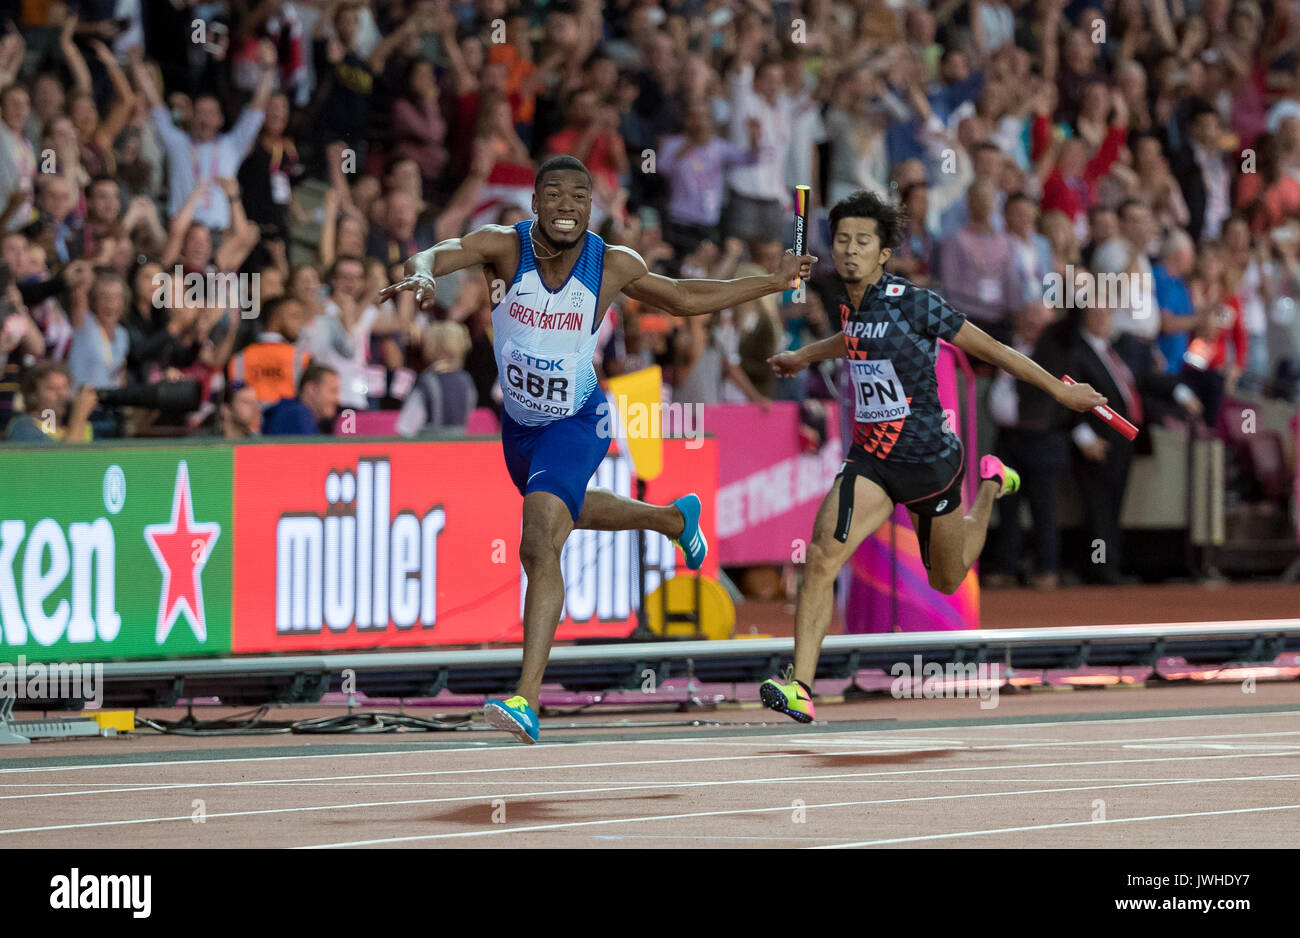 London, UK. 12th Aug, 2017. Nethaneel Mitchell-Blake of GBR as the Great Britain Relay team win the 4x100 metre Gold during the IAAF World Athletics Championships 2017 on DAY 9 at the Olympic Park, London, England on 12 August 2017. Photo by Andy Rowland / PRiME Media Images. Credit: Andrew Rowland/Alamy Live News - Stock Image